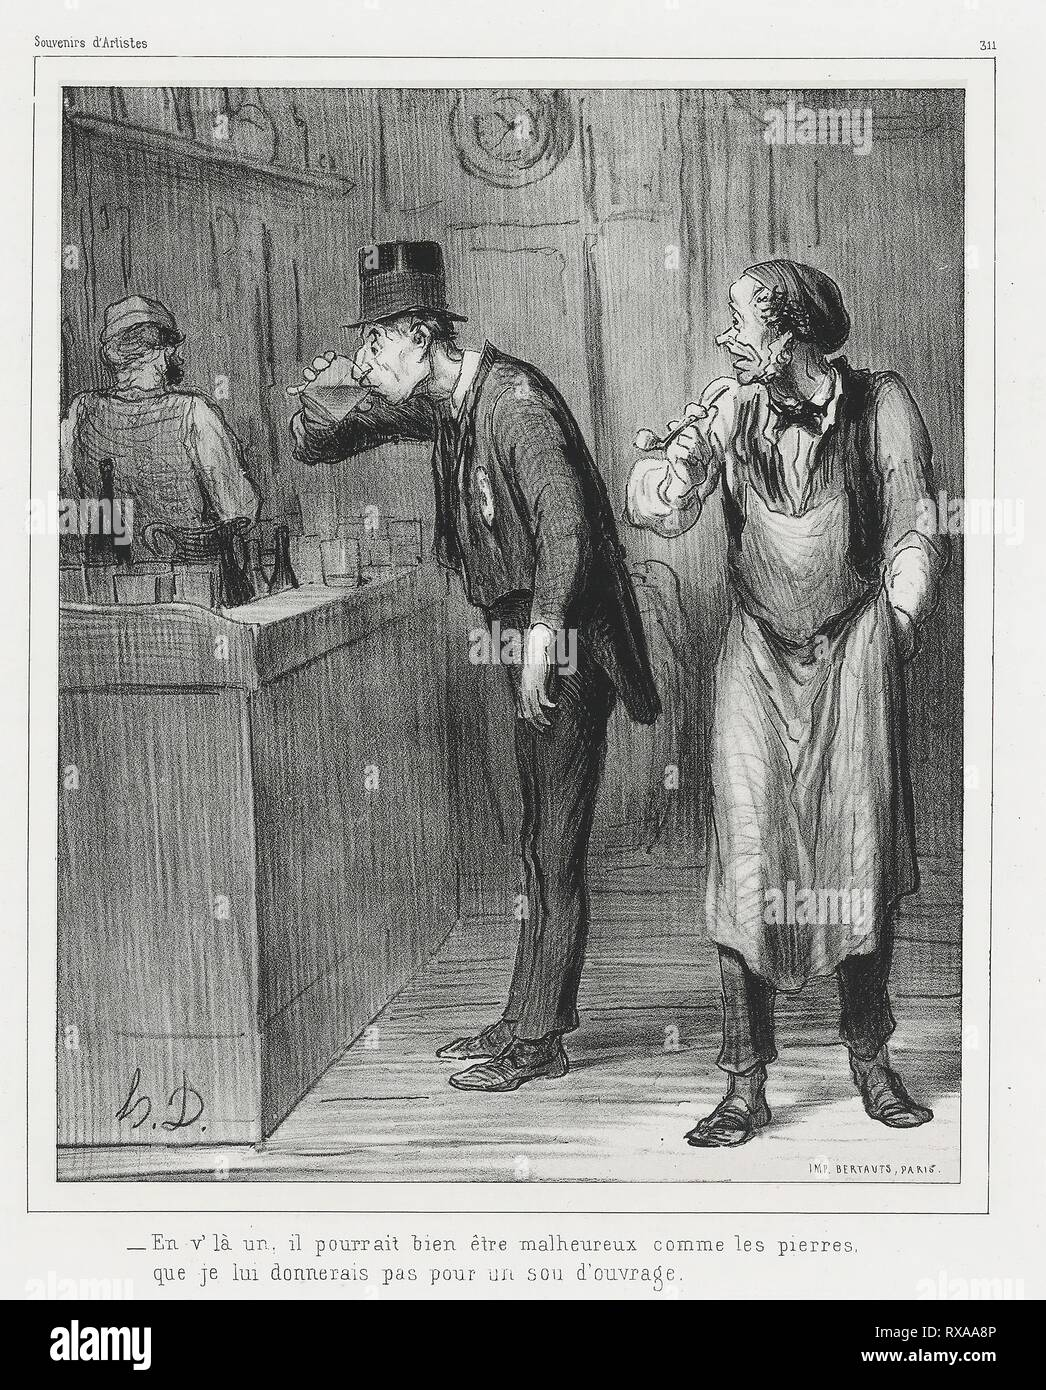 """""""- This one may look as unhappy as a rock, before I would give him a job"""". Honoré Victorin Daumier; French, 1808-1879. Date: 1862. Dimensions: 265 × 219 mm (image); 451 × 315 mm (sheet). Lithograph in black on ivory China paper, laid down on white wove paper (chine collé). Origin: France. Museum: The Chicago Art Institute. Author: Honoré-Victorin Daumier. Stock Photo"""